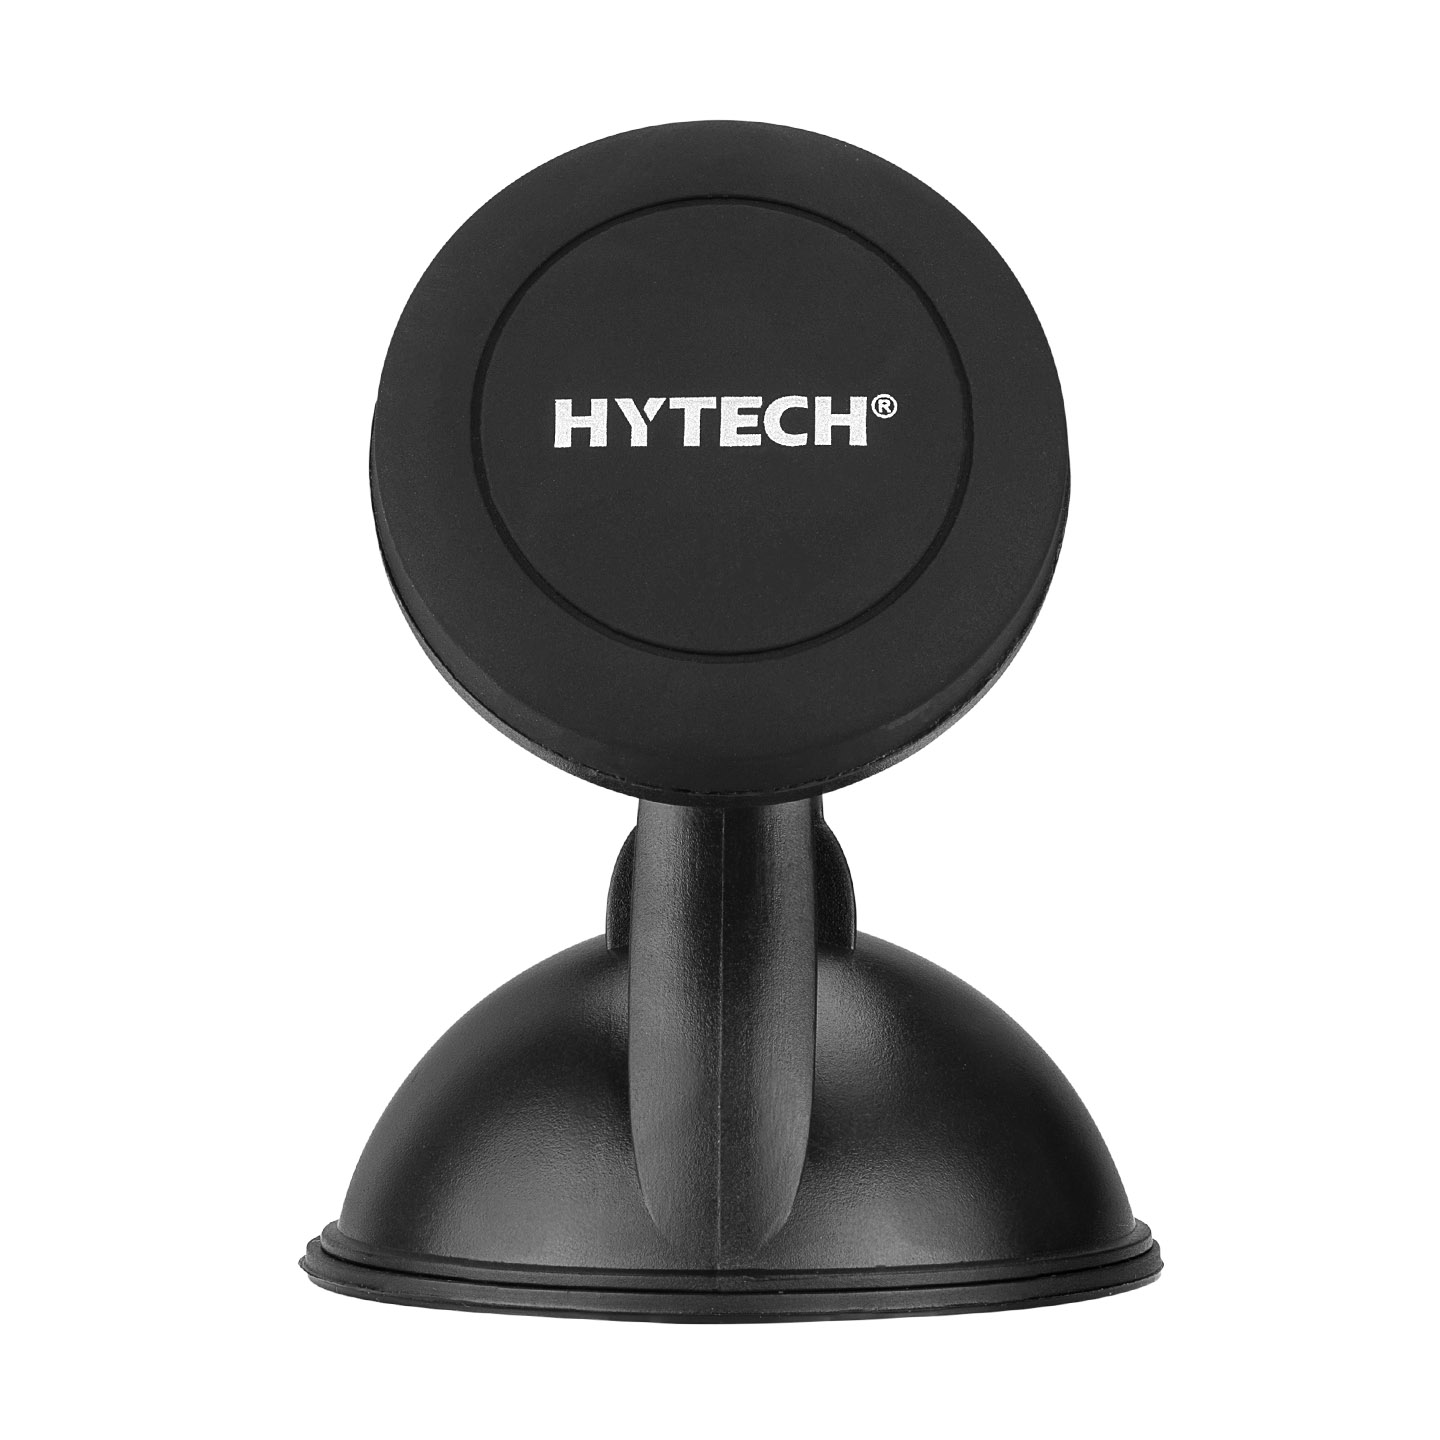 HYTECH HY-XH30 Easily Pluggable 360 Degree Black Magnetic Car Phone Holder